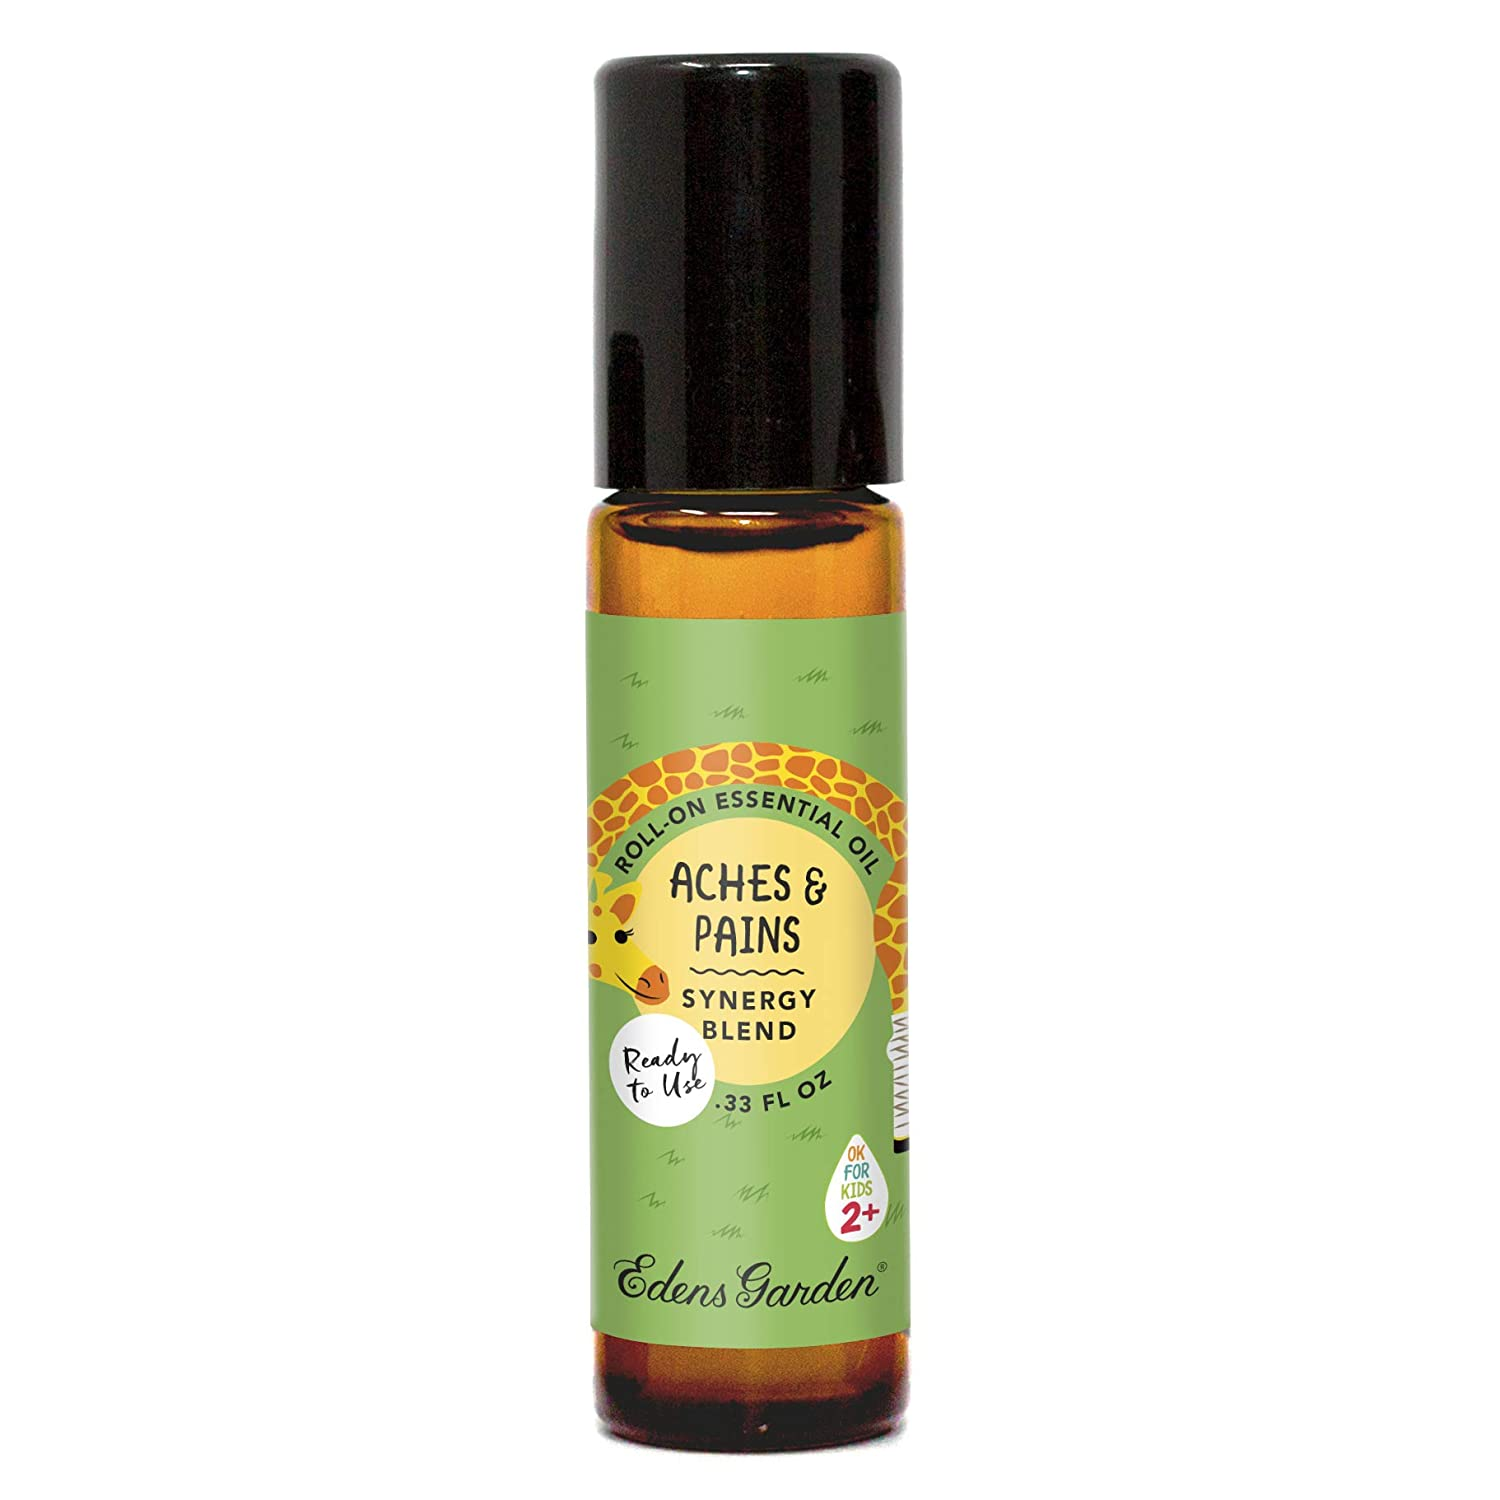 "Edens Garden Aches & Pains""OK For Kids"" Essential Oil Synergy Blend, 100% Pure Therapeutic Grade (Child Safe 2+, Pre-Diluted & Ready To Use- Massage & Pain) 10 ml Roll-On"